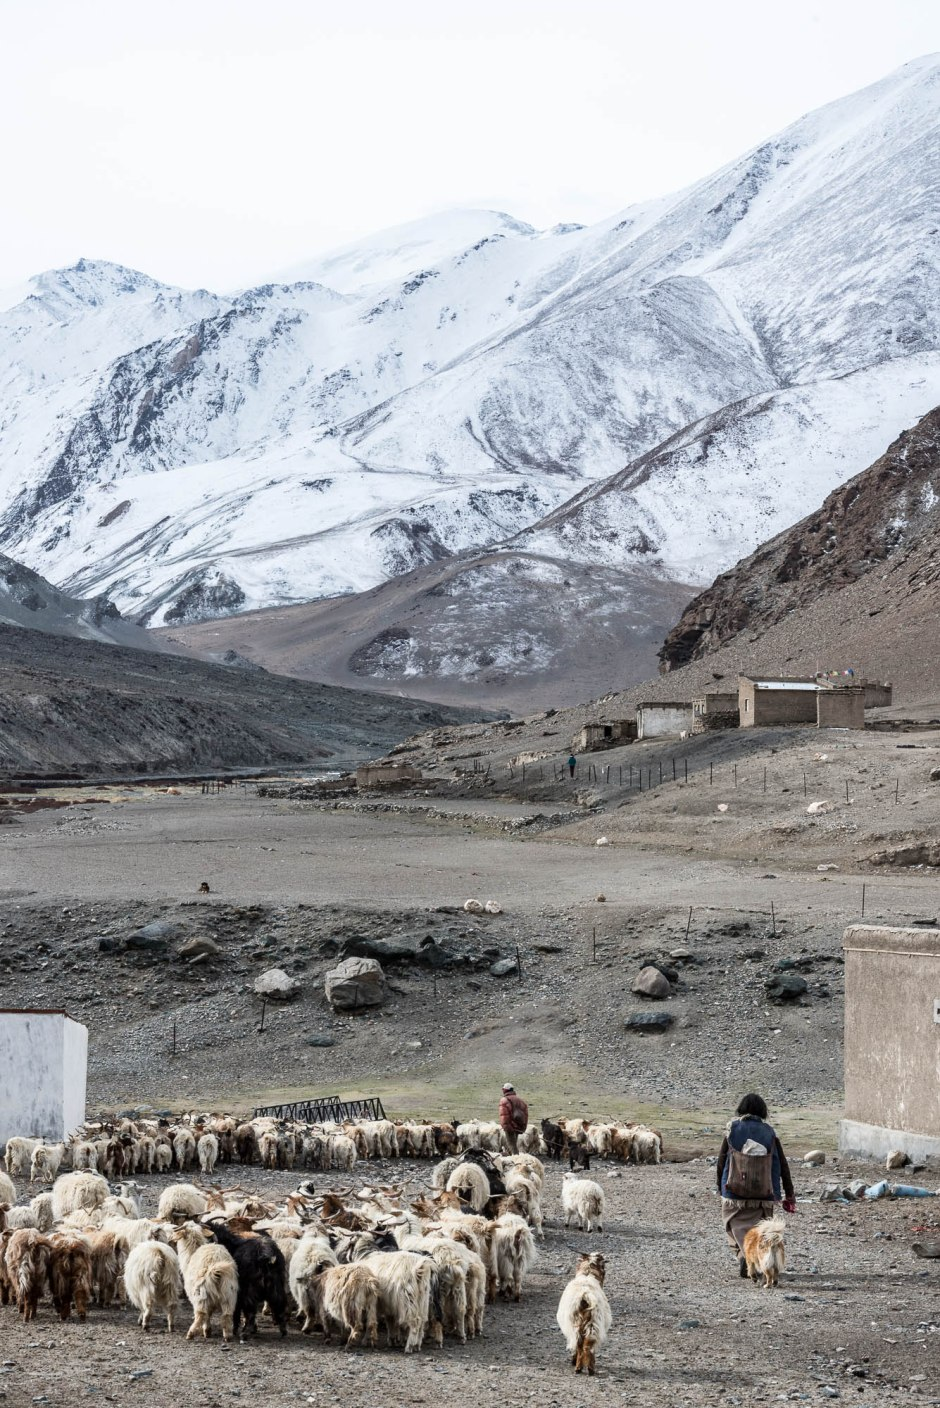 Tibetan goat herders lead their flocks to pasture as the day dawns.